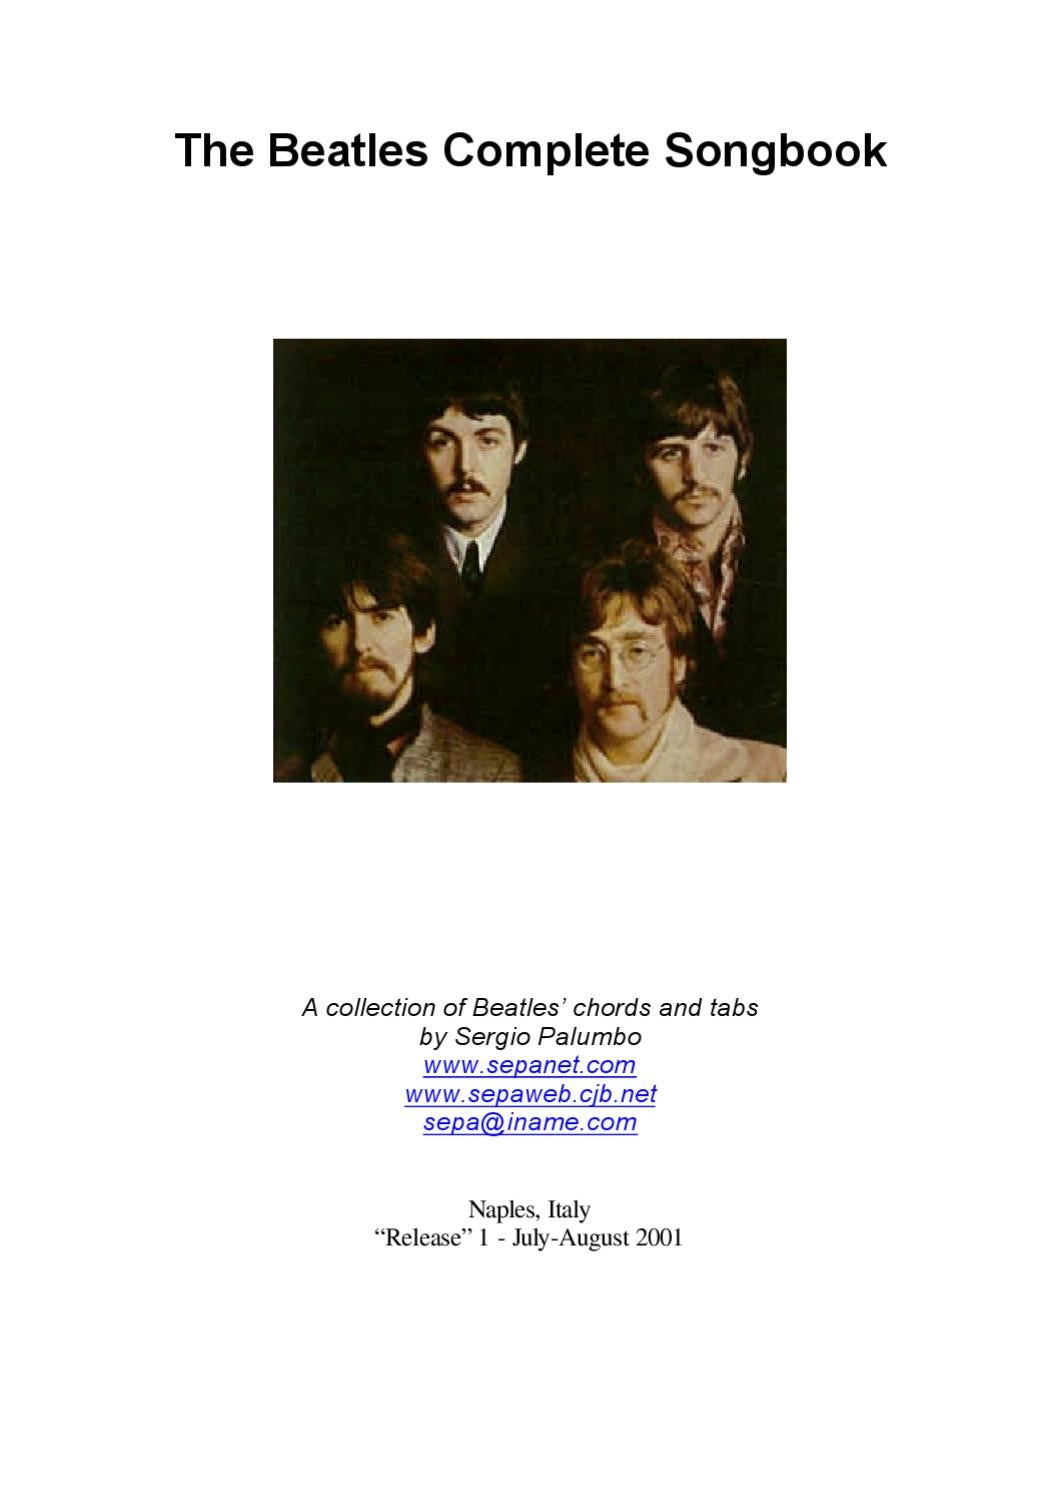 The Beatles Complete Songbook For Guitar Tabs And Chords By